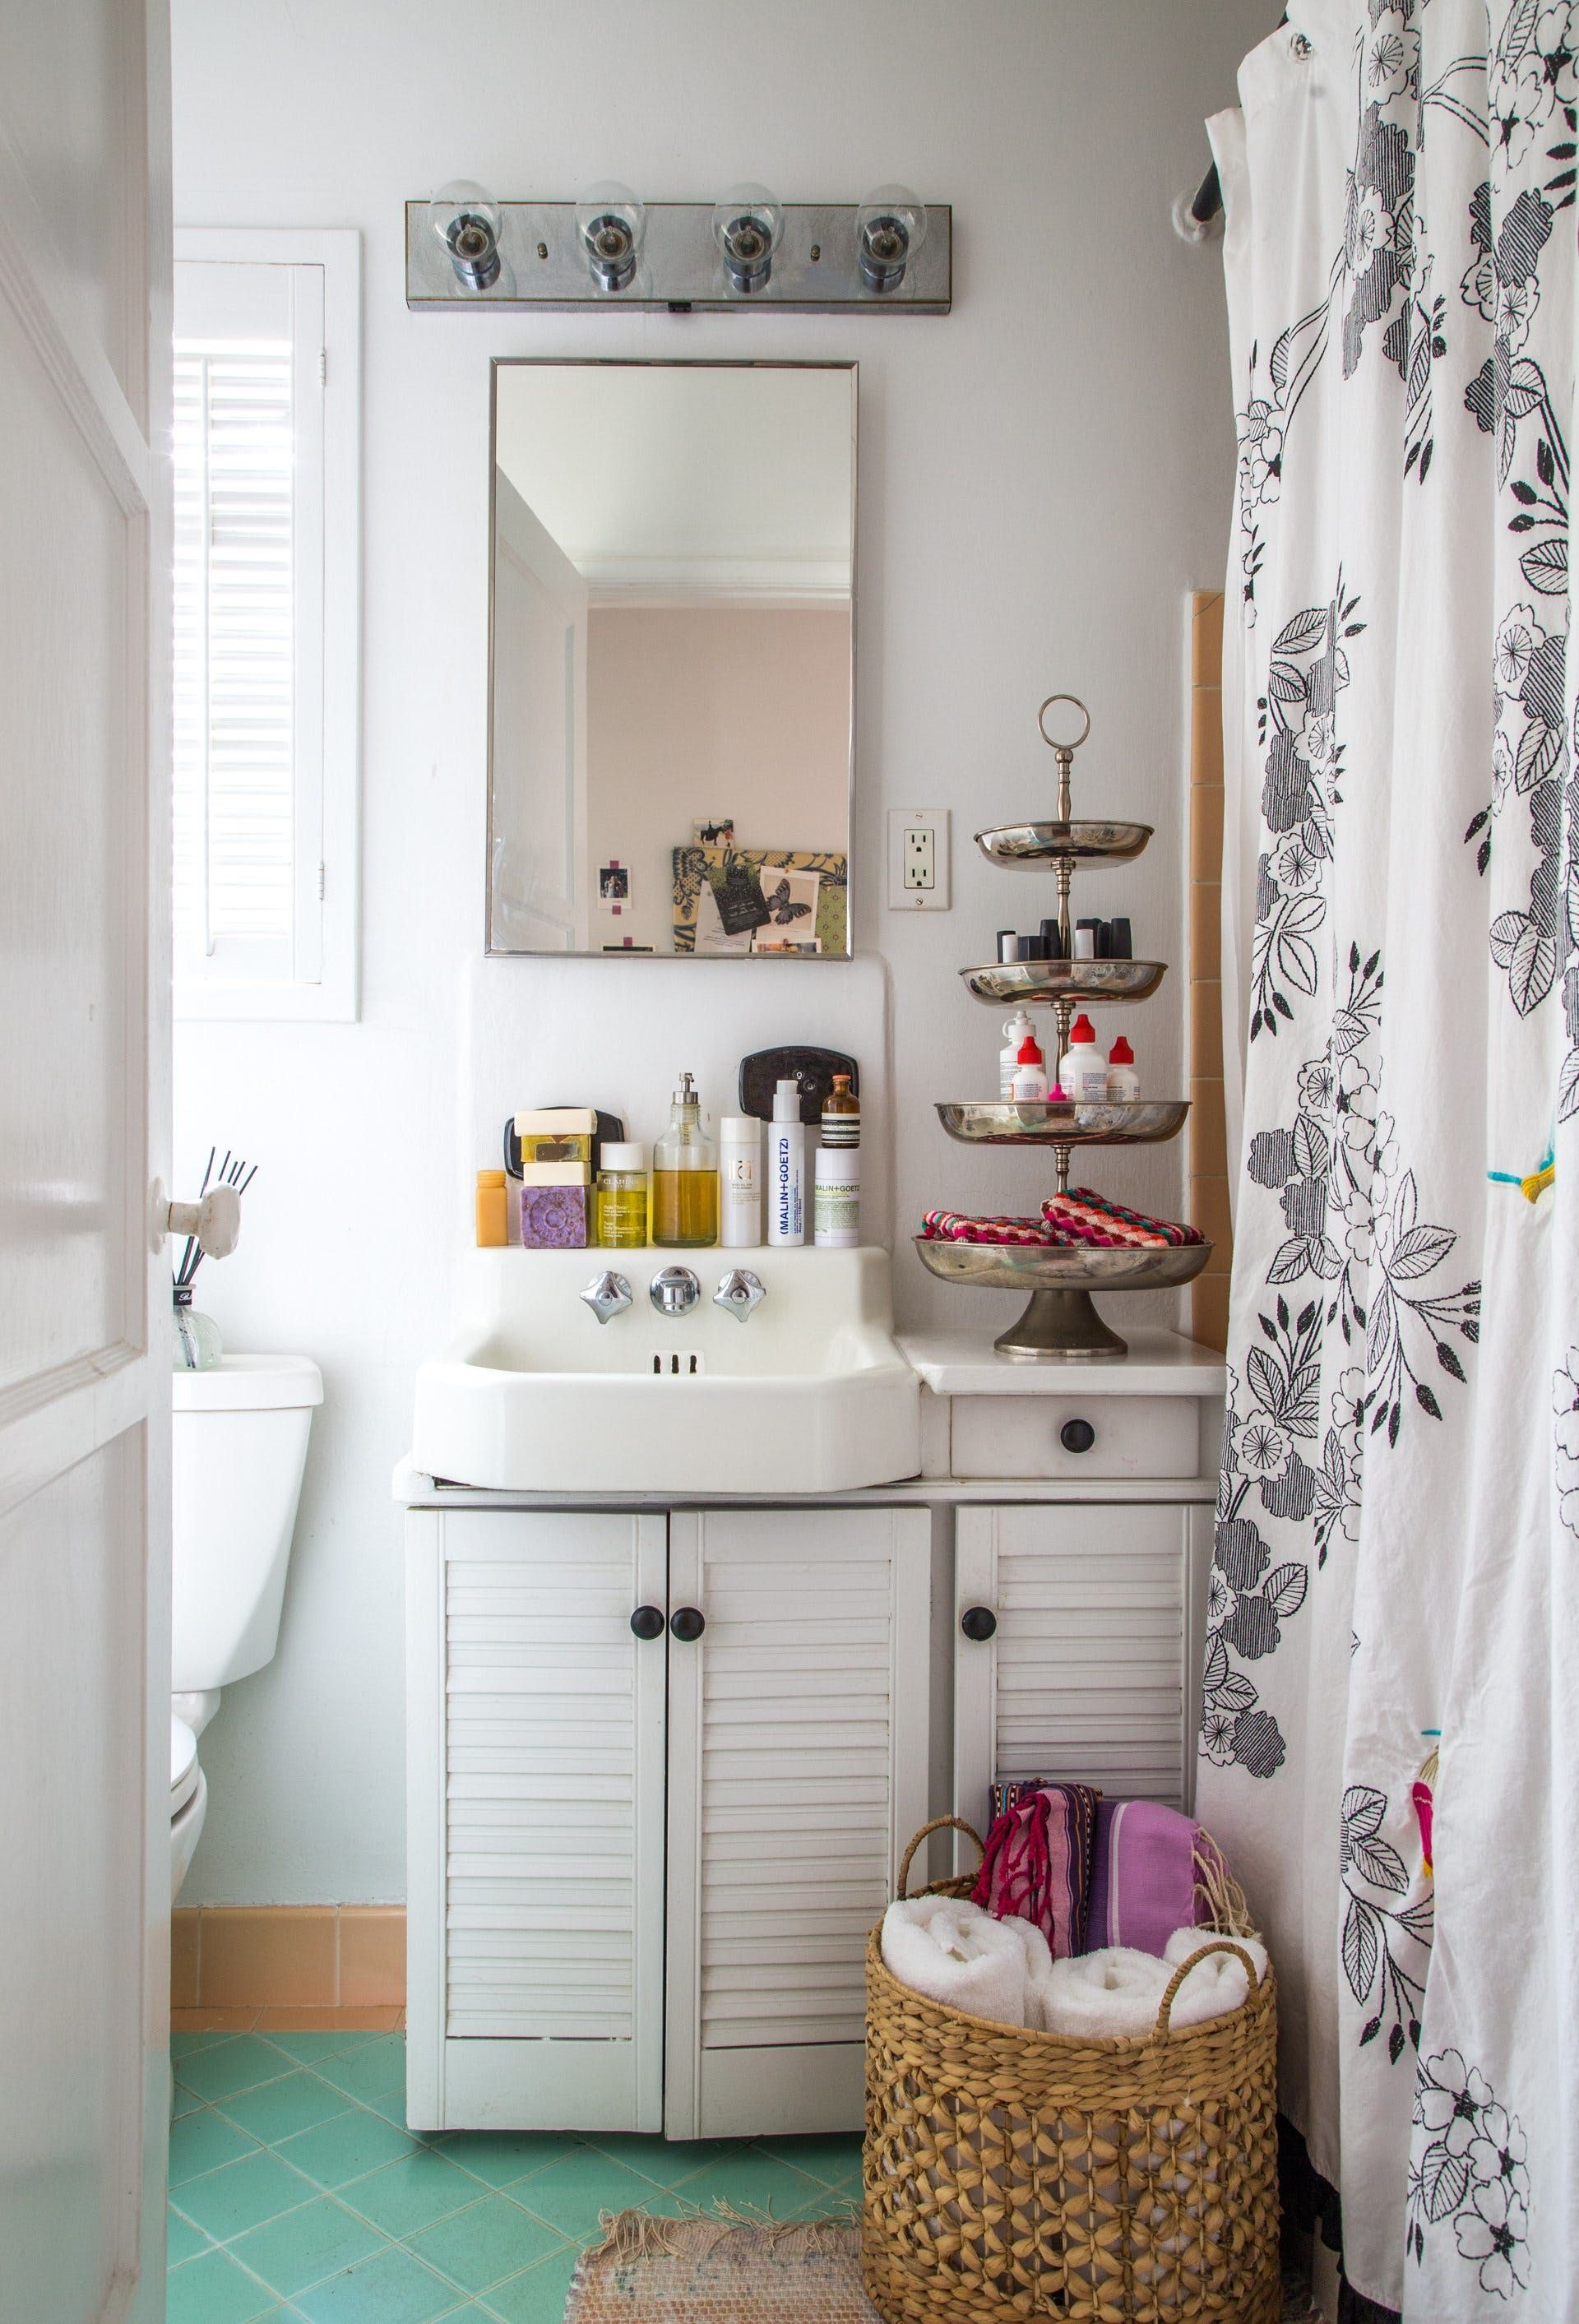 How to Love Your Tiny Rental Bathroom: Styling Ideas from 10 Real ...